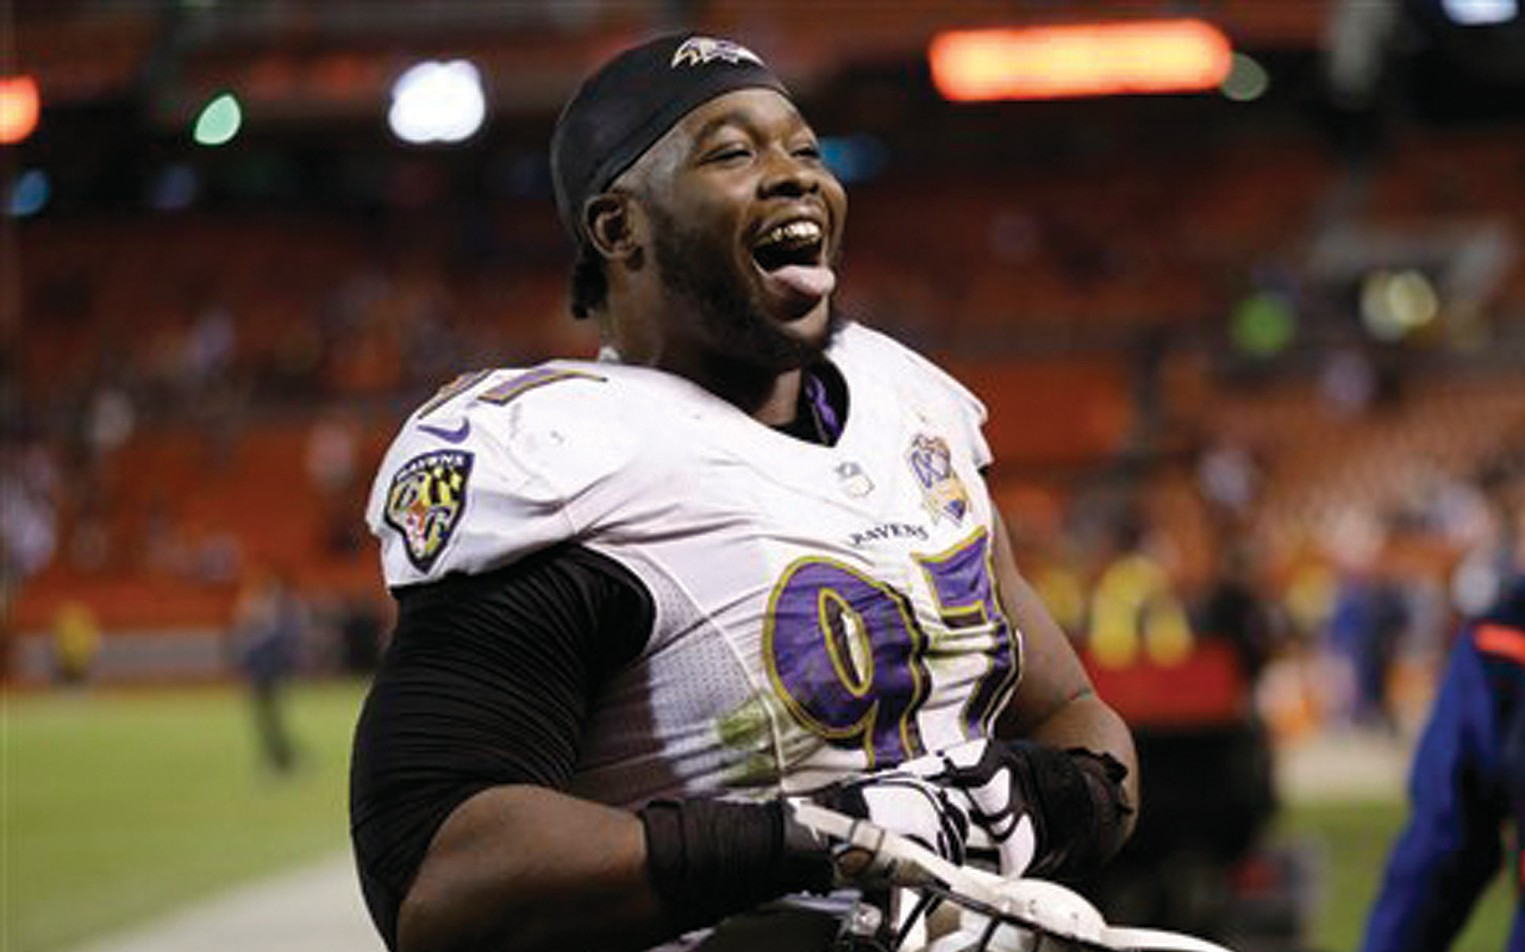 Baltimore Ravens defensive end Timmy Jernigan reacts after a 33-27 win over the Cleveland Browns on Monday in Cleveland.